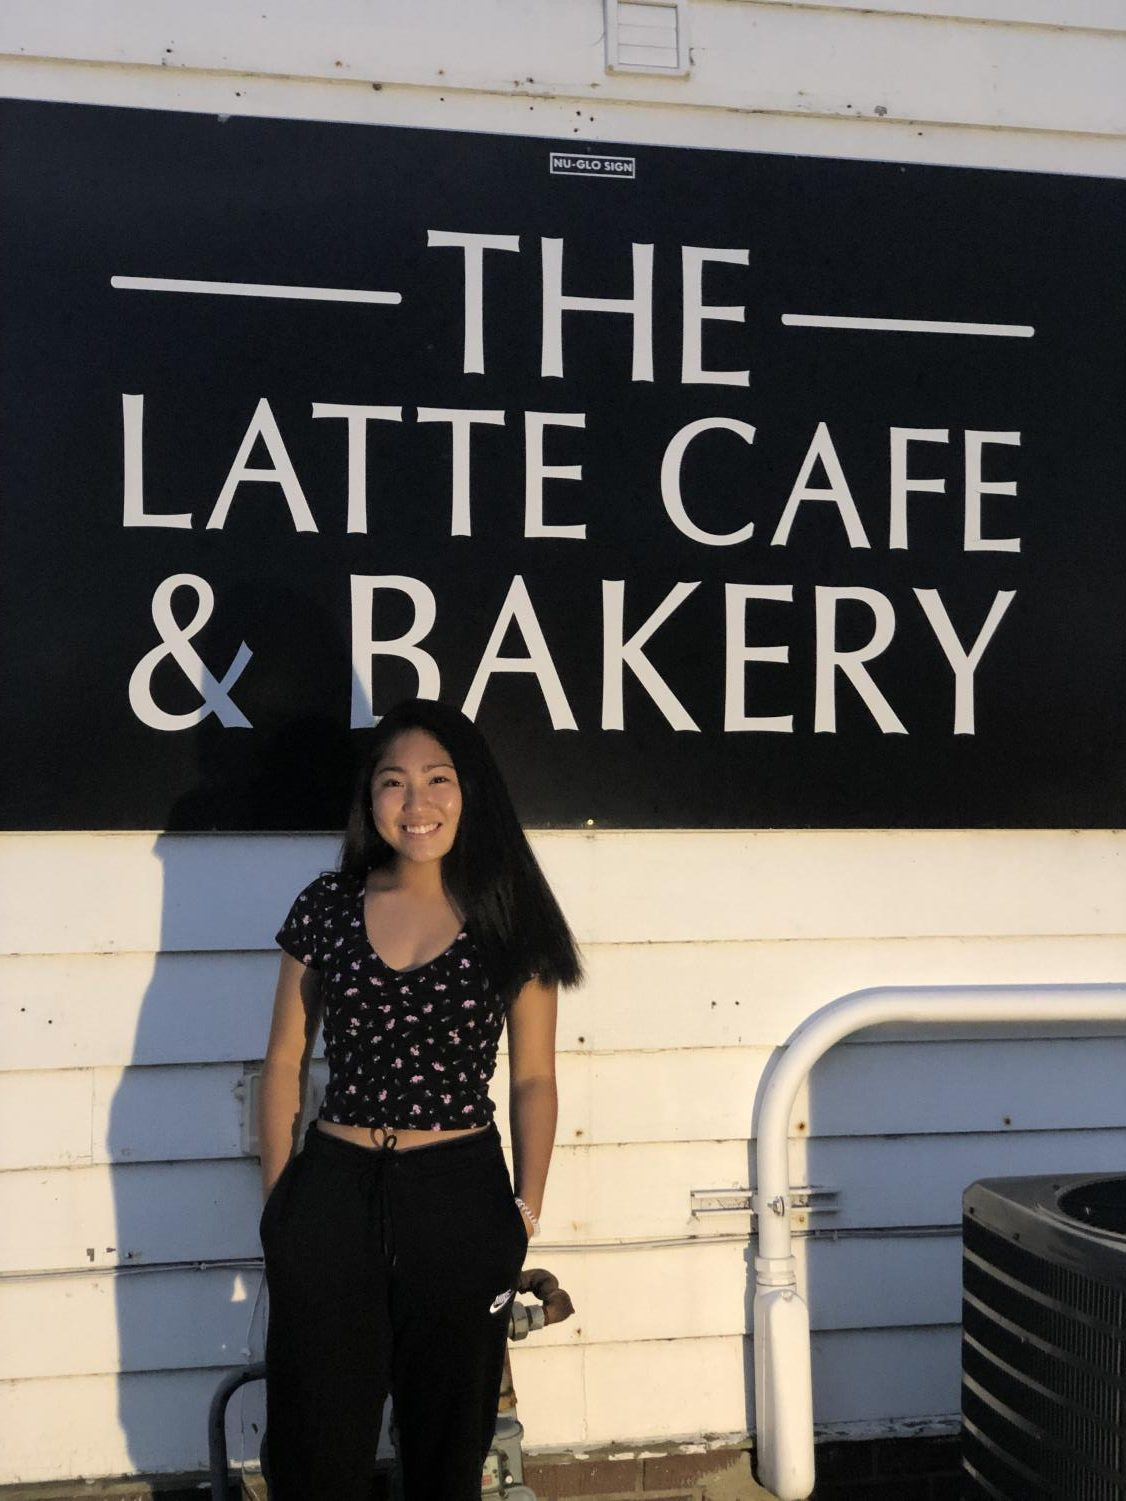 Coffee lover and enthusiast Olivia Lahti stands by the iconic Latte Cafe and Bakery sign in Antioch, Ill.